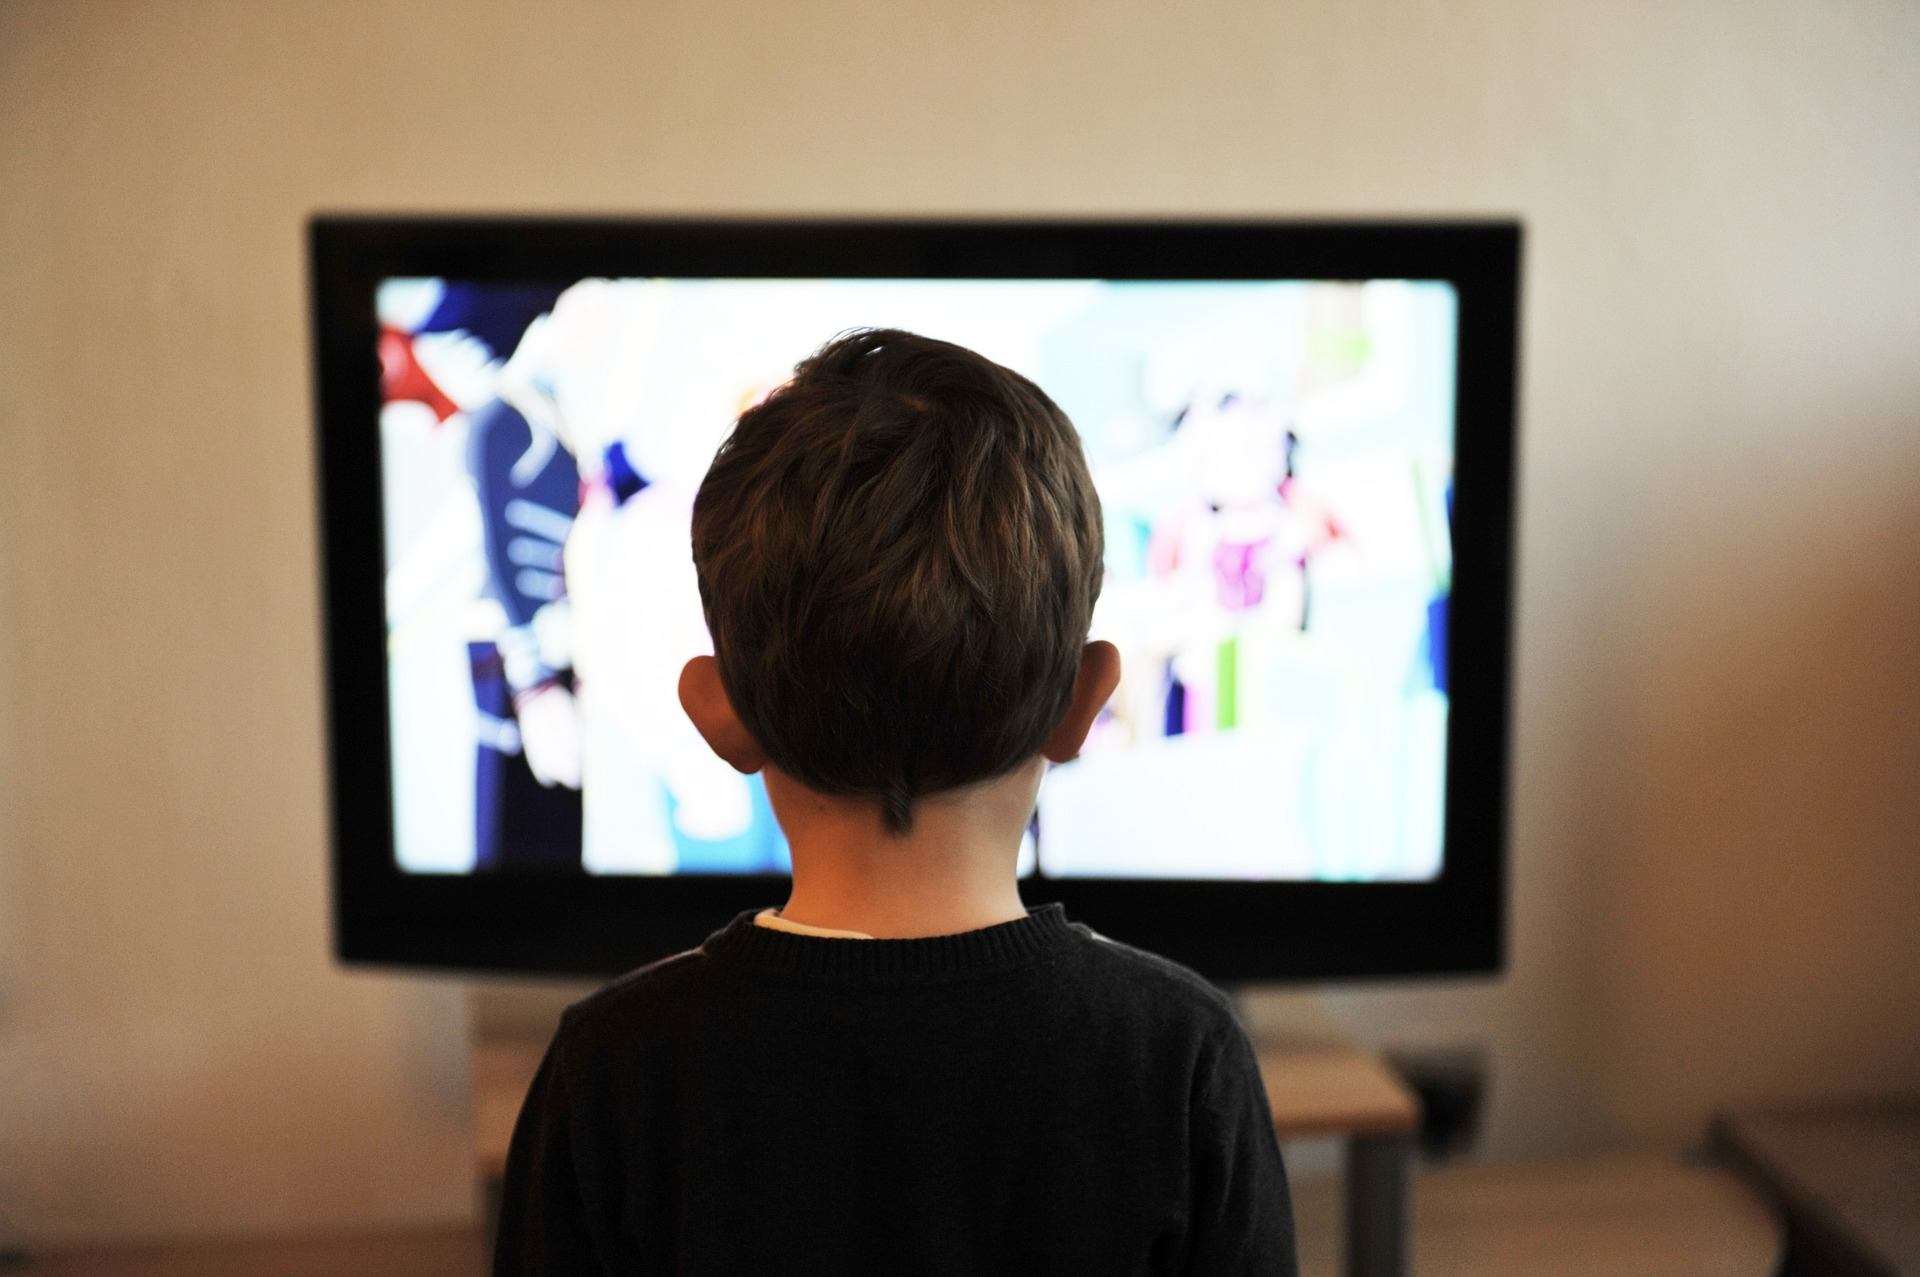 Are you using your new found wealth to watch a ridiculous amount of TV every day?